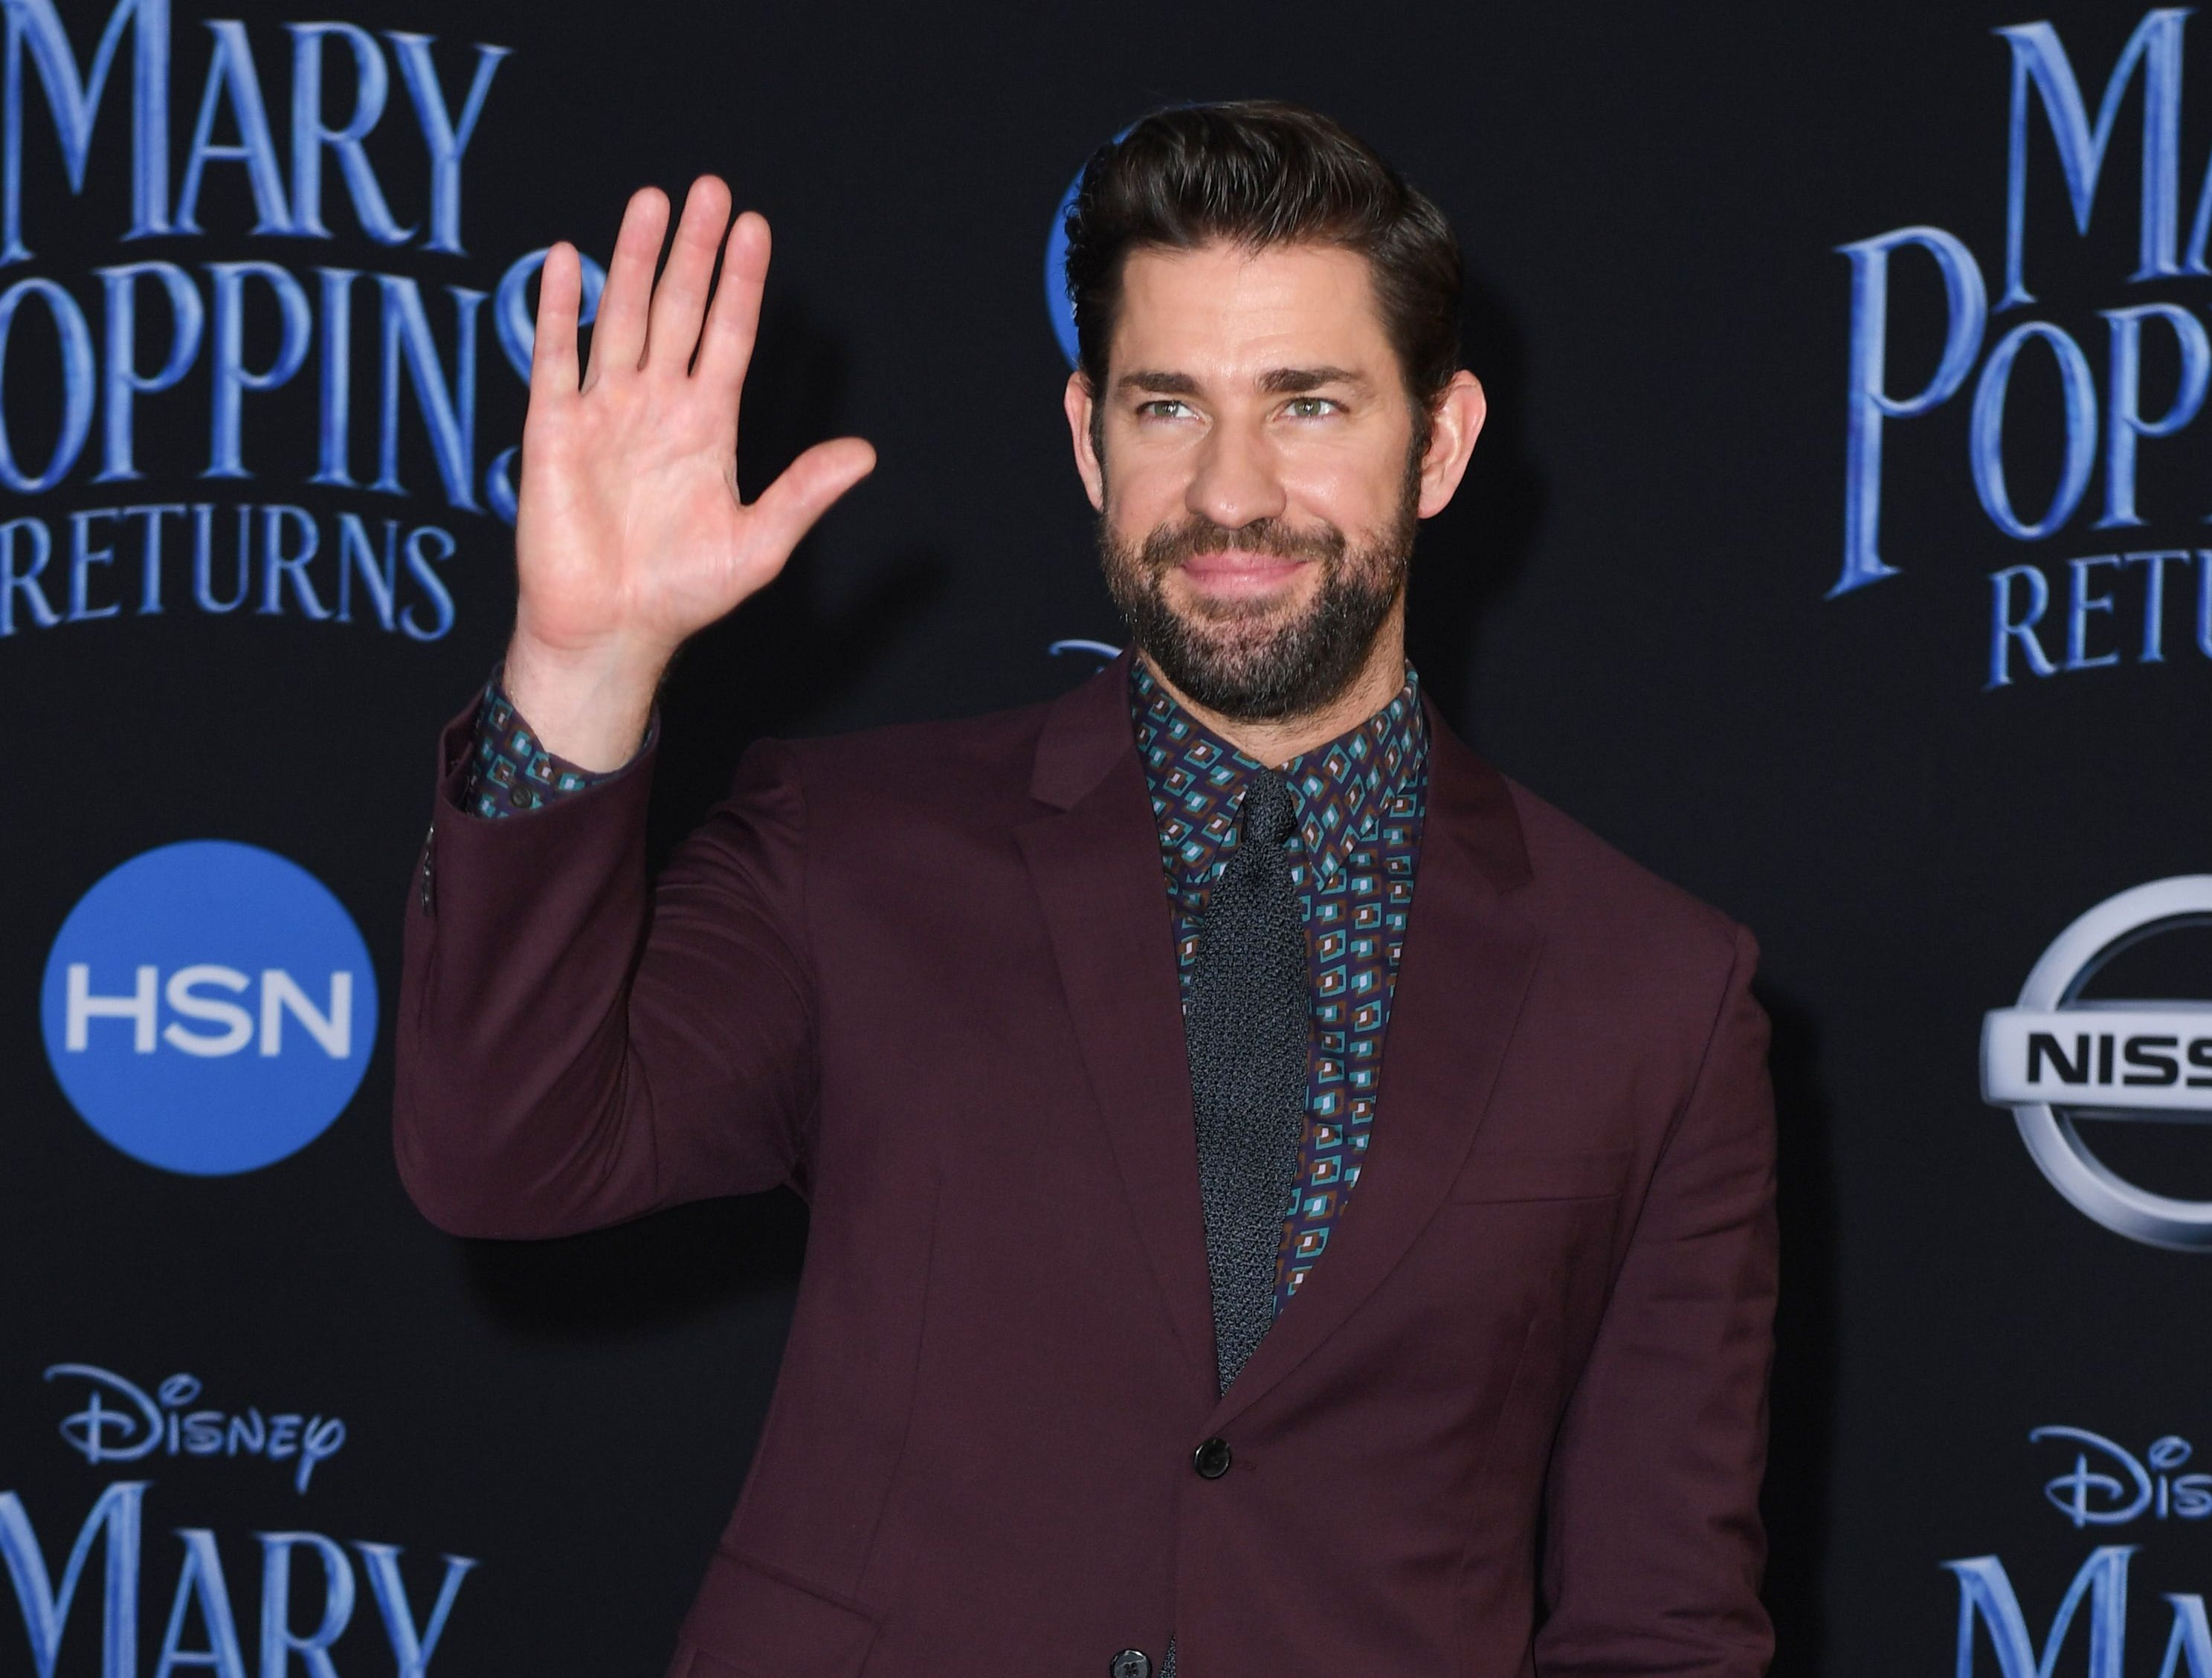 """US actor John Krasinski arrives for the world premiere of Disney's """"Mary Poppins Returns"""" at the Dolby theatre in Hollywood on November 29, 2018. (Photo by VALERIE MACON / AFP)VALERIE MACON/AFP/Getty Images ORG XMIT: 'Mary Pop ORIG FILE ID: AFP_1B81EH"""